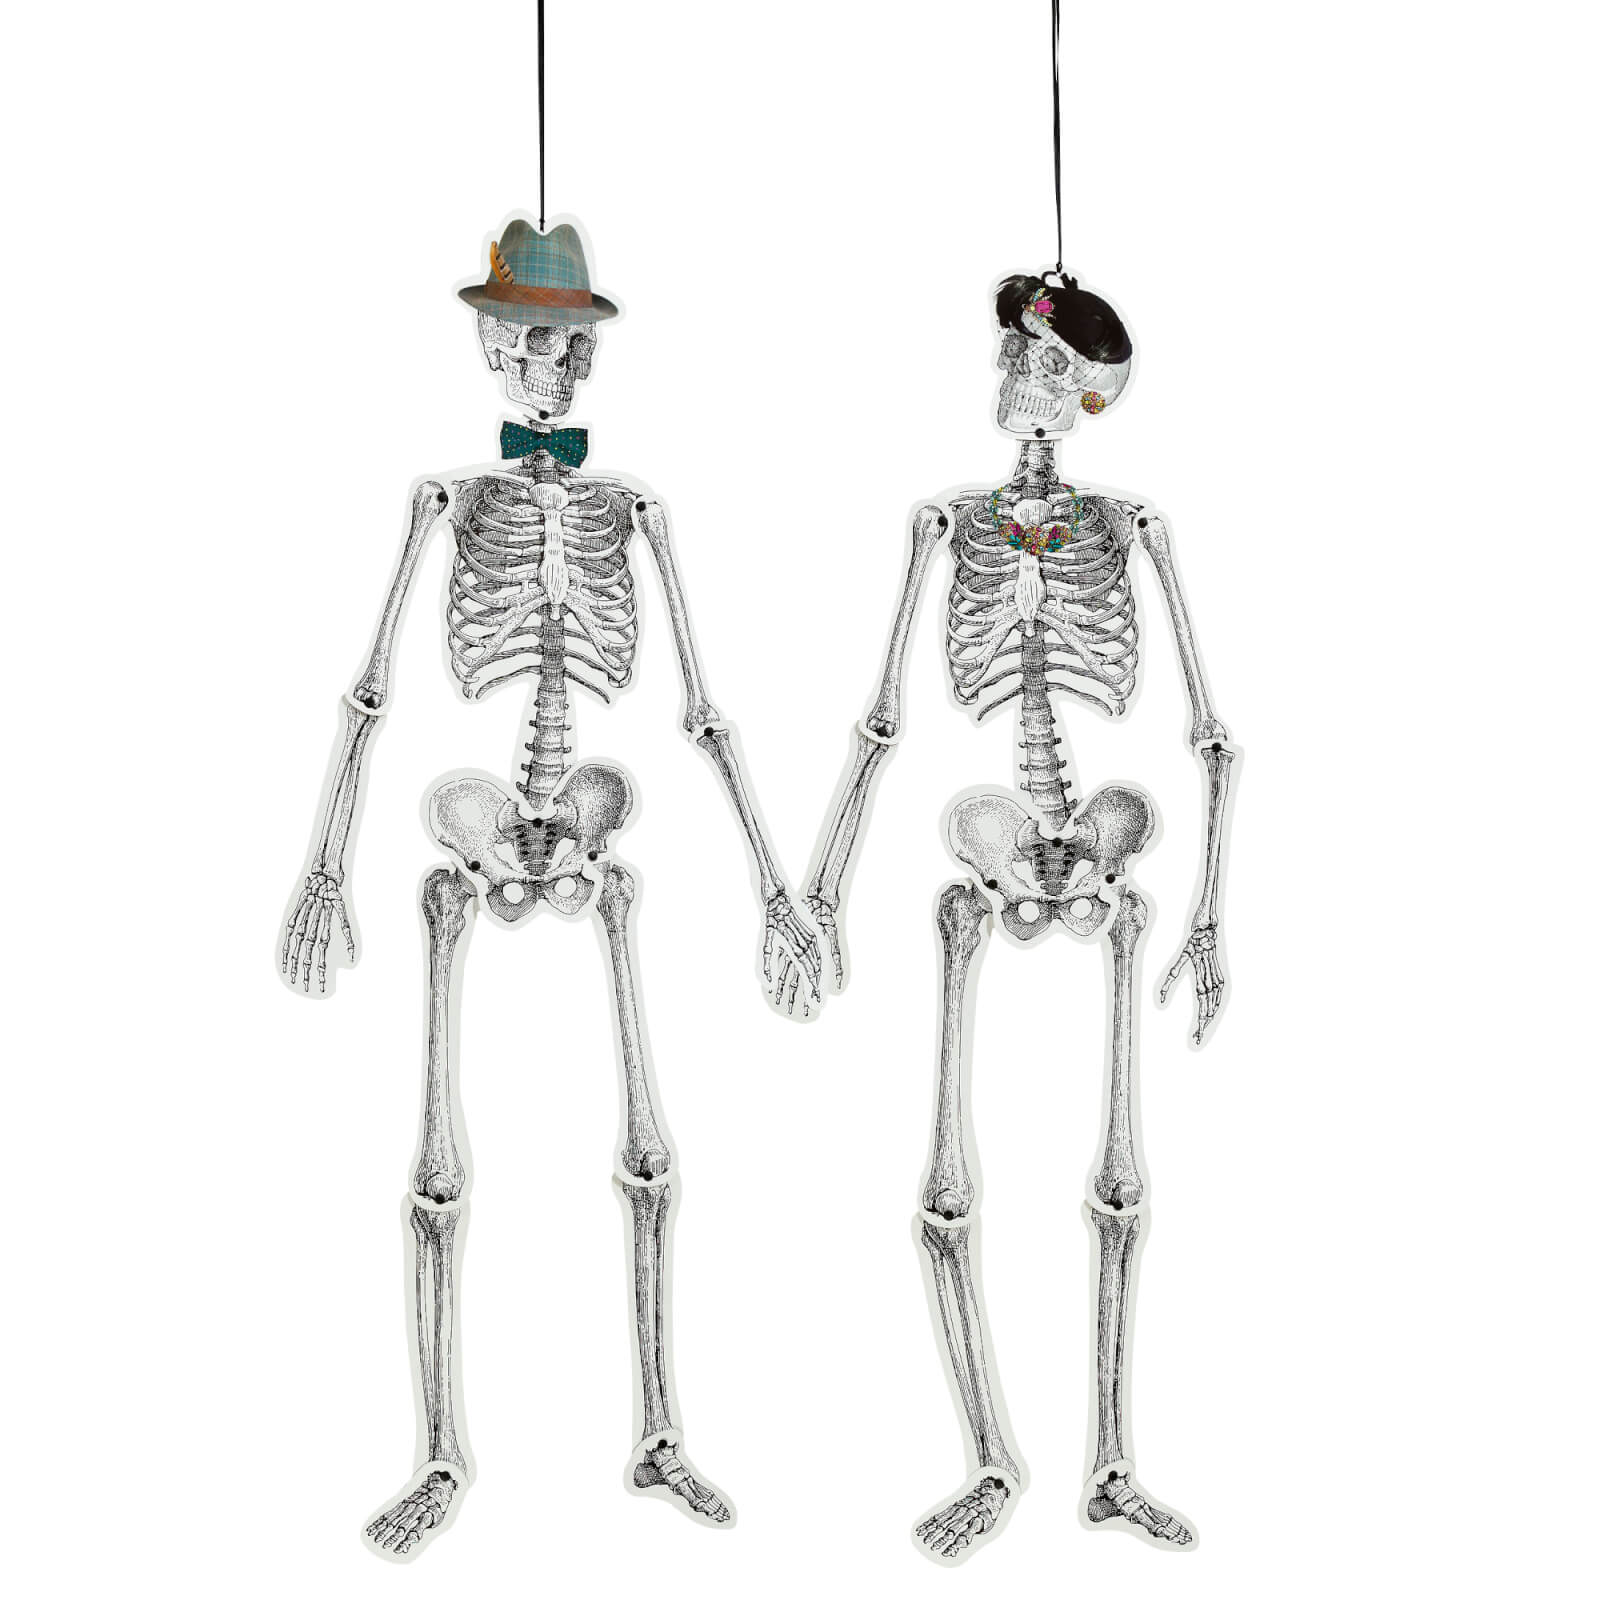 Skeleton Crew Mr. and Mrs. Bones Life Size Paper Skeletons